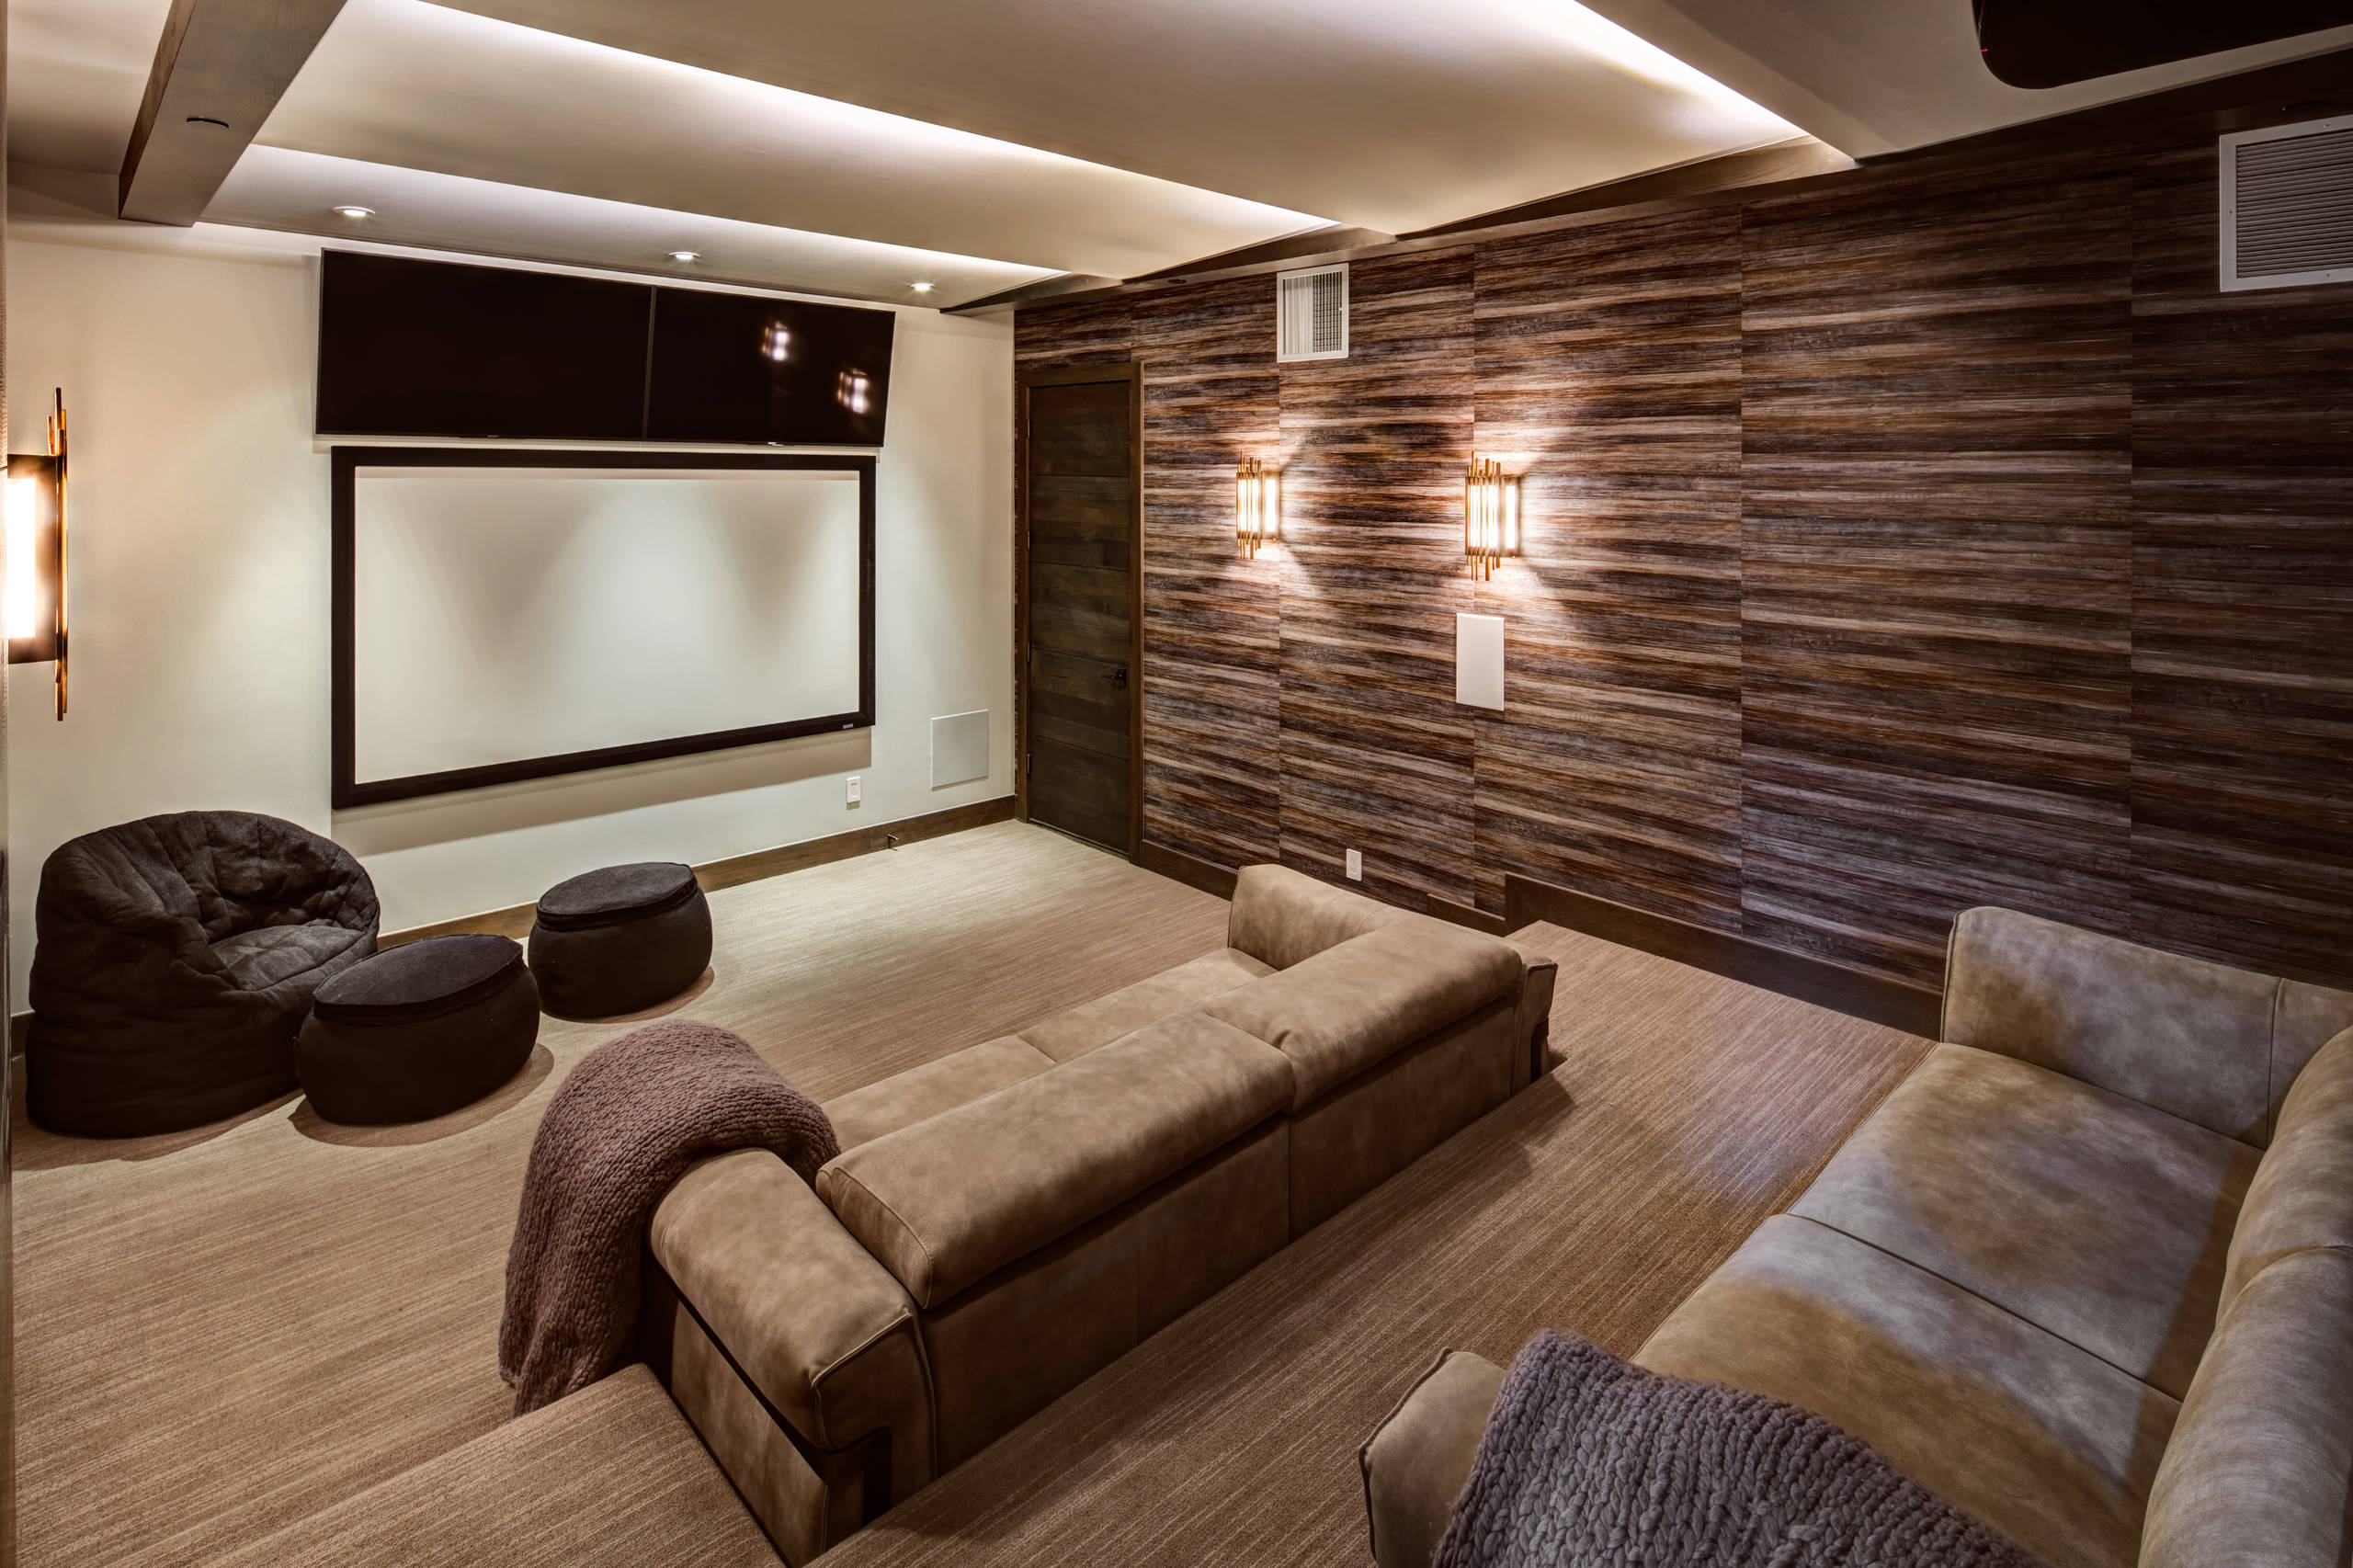 75 Beautiful Modern Home Theater Pictures Ideas January 2021 Houzz